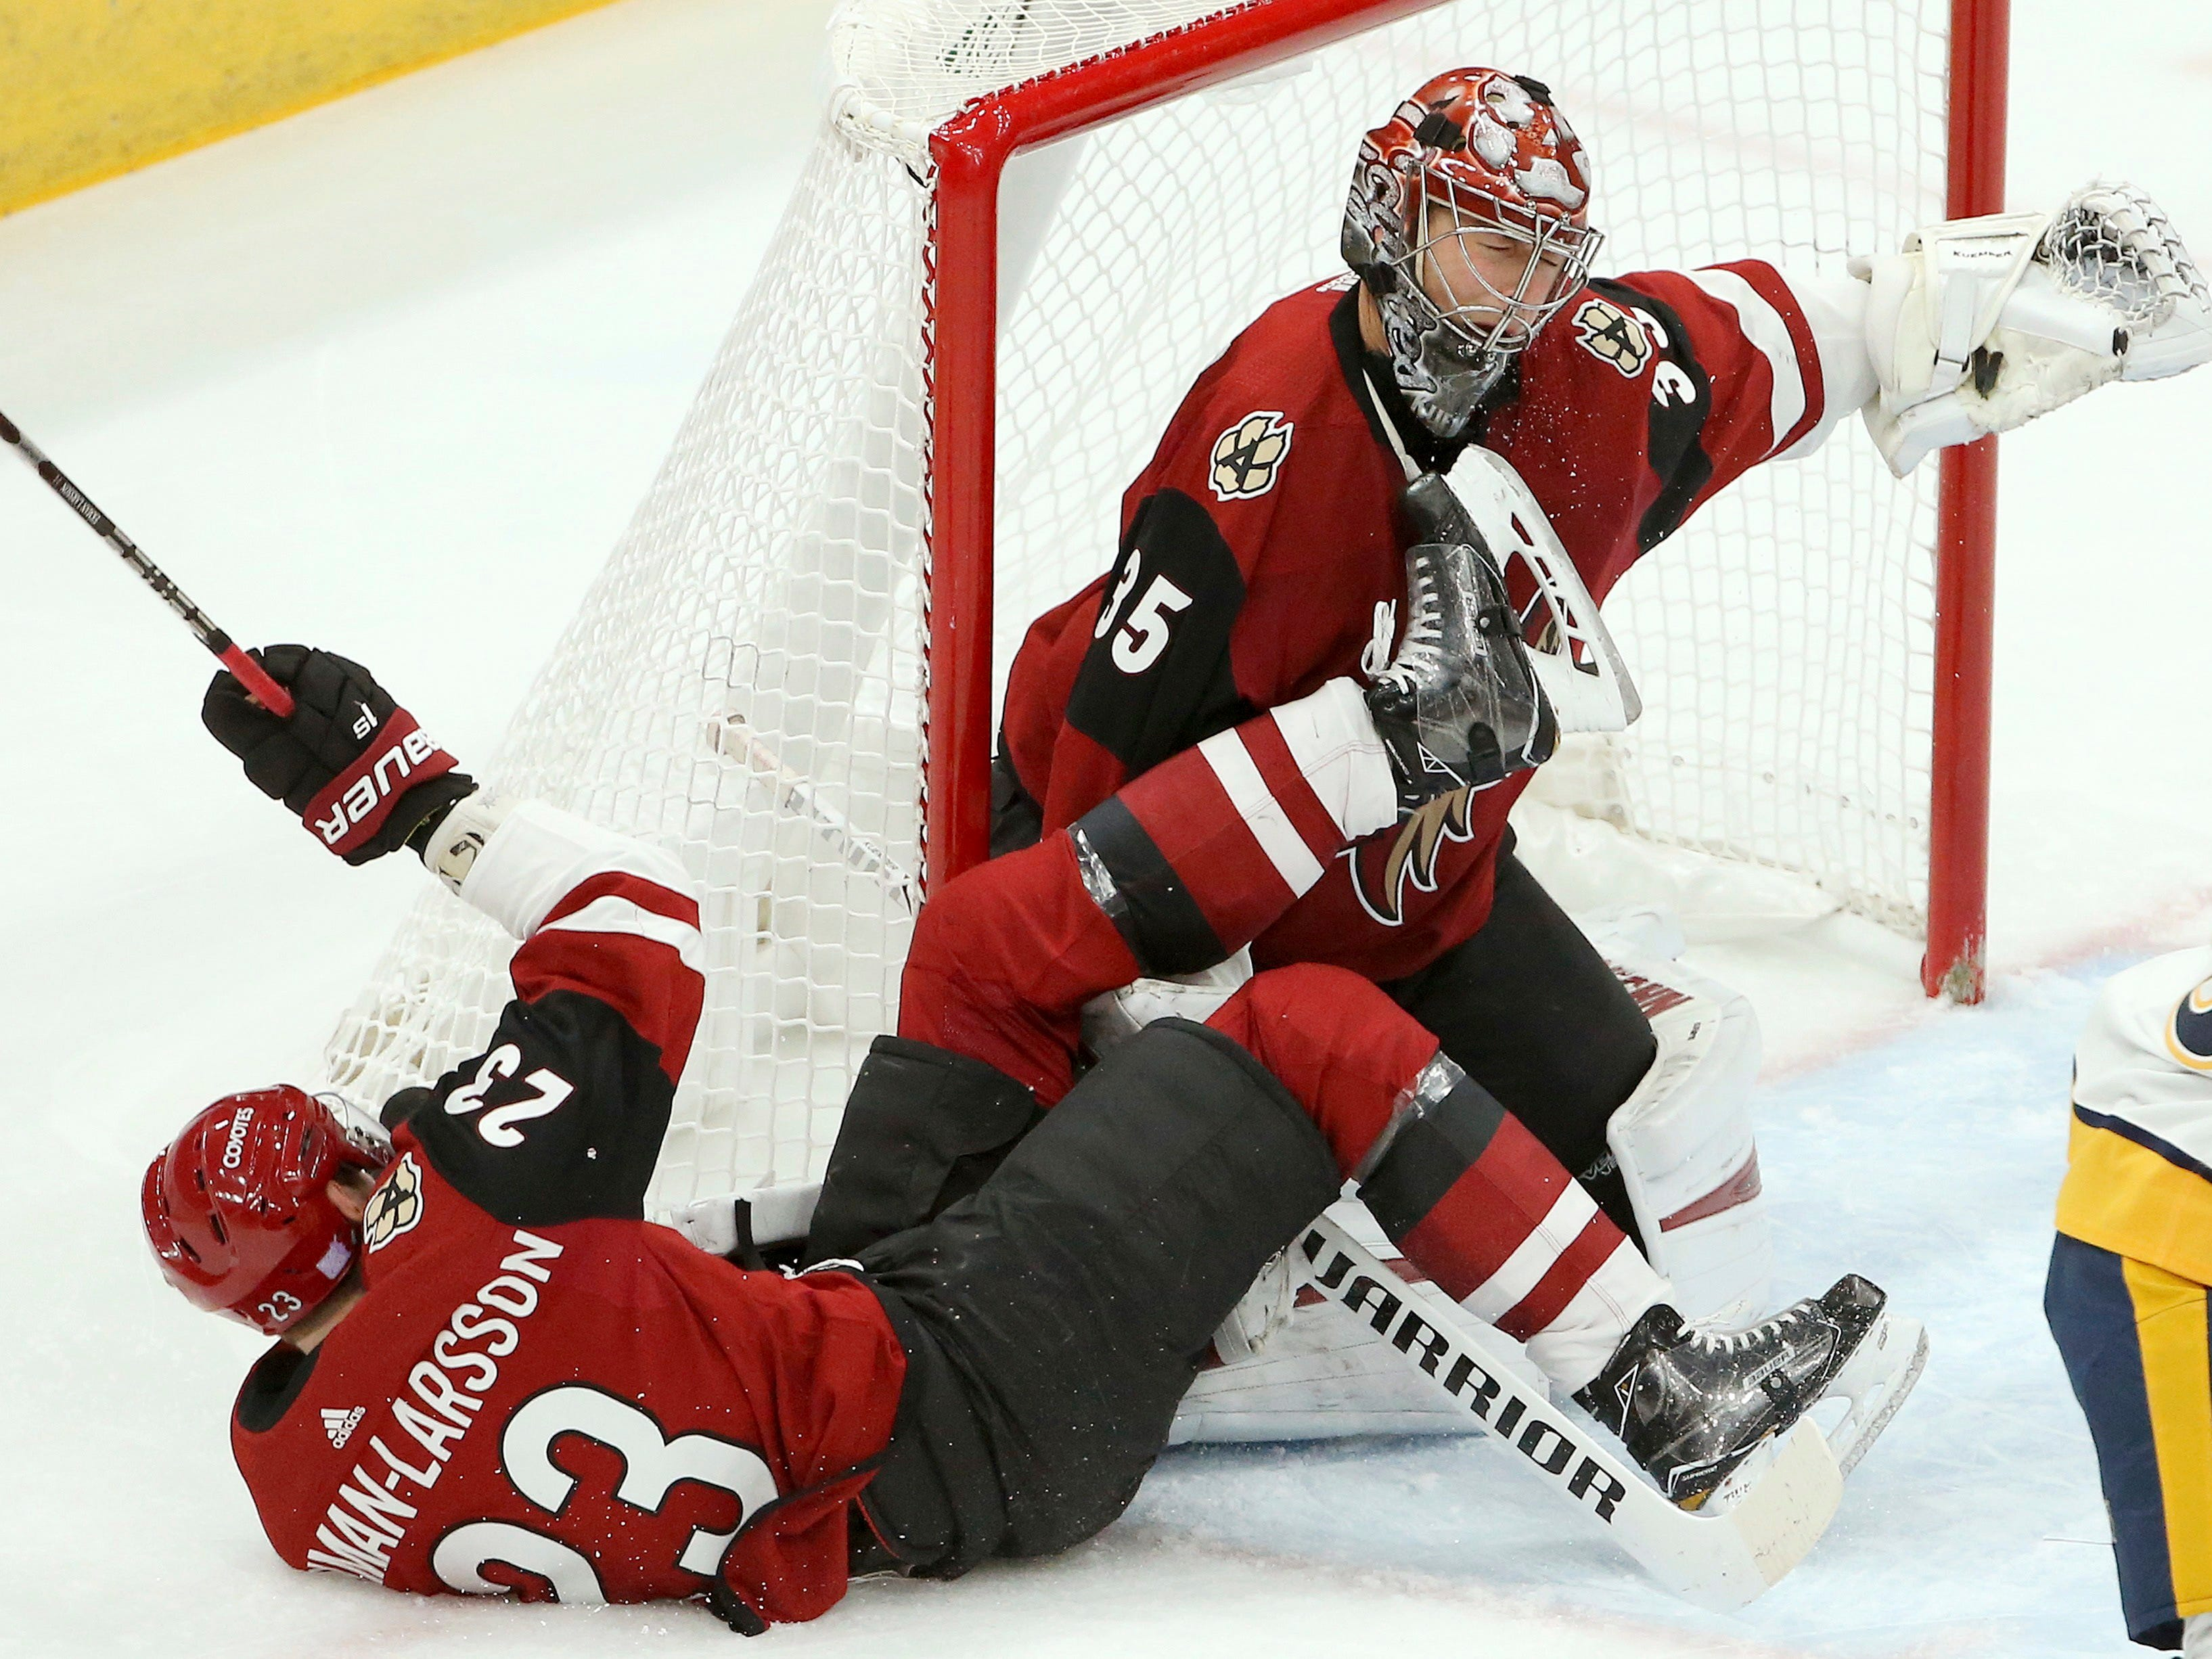 Arizona Coyotes defenseman Oliver Ekman-Larsson (23) collides with goaltender Darcy Kuemper (35) during the first period of an NHL hockey game against the Nashville Predators Thursday, Nov. 15, 2018, in Glendale, Ariz. (AP Photo/Ross D. Franklin)